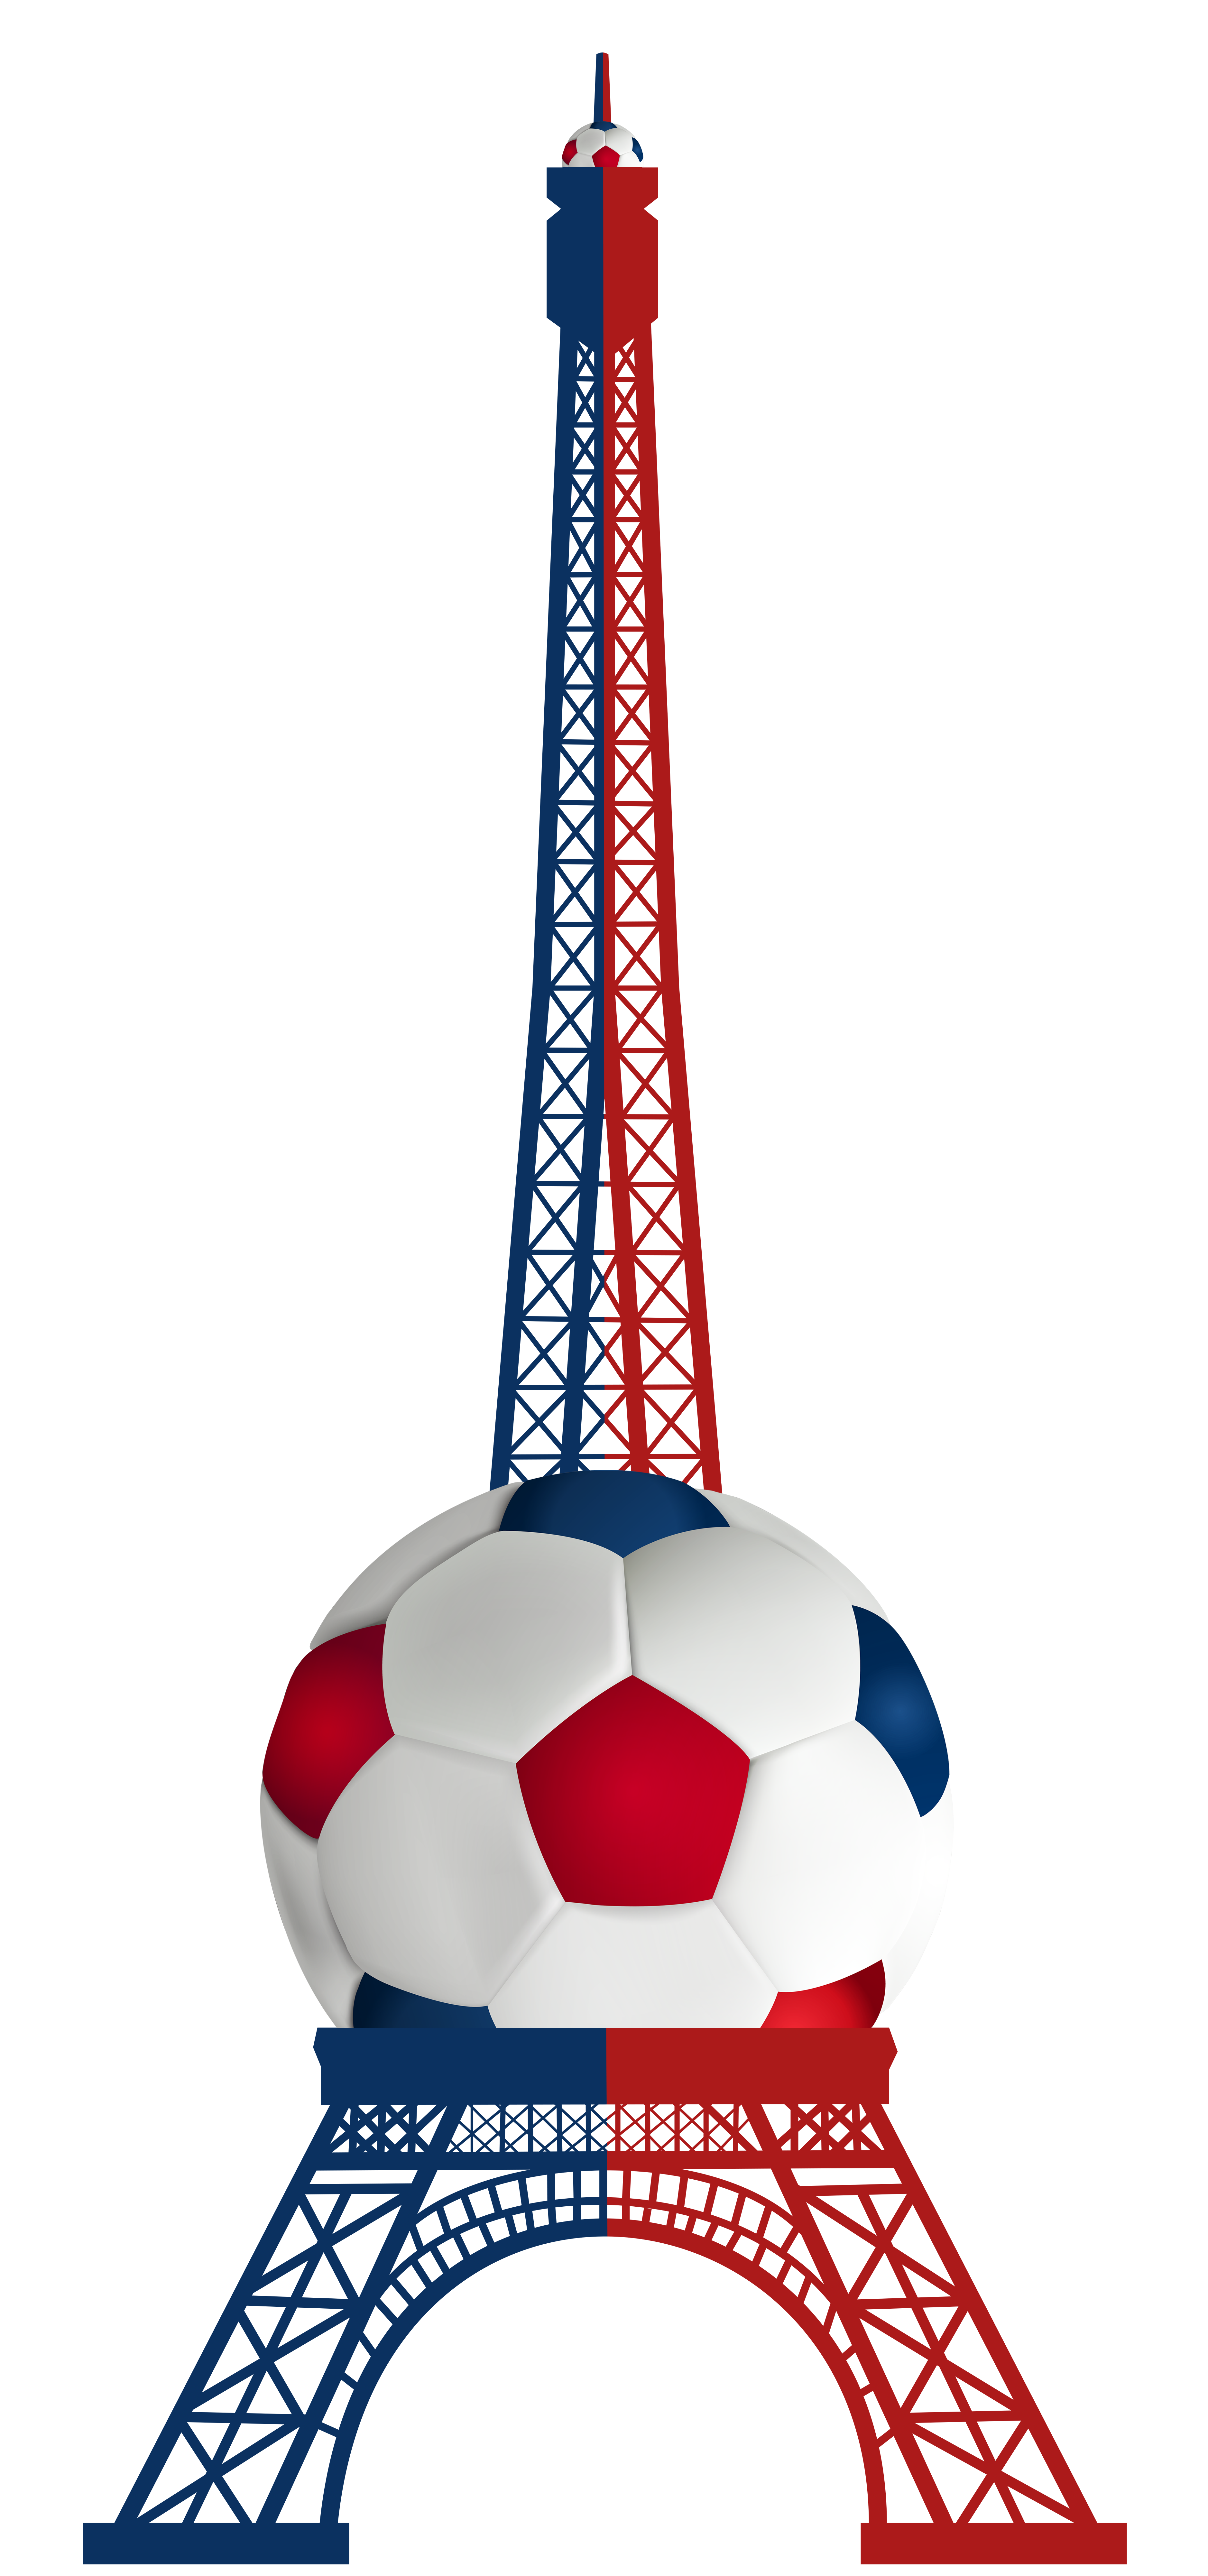 Football 2016 clipart png library library Eiffel Tower Euro 2016 France PNG Transparent Clip Art Image ... png library library